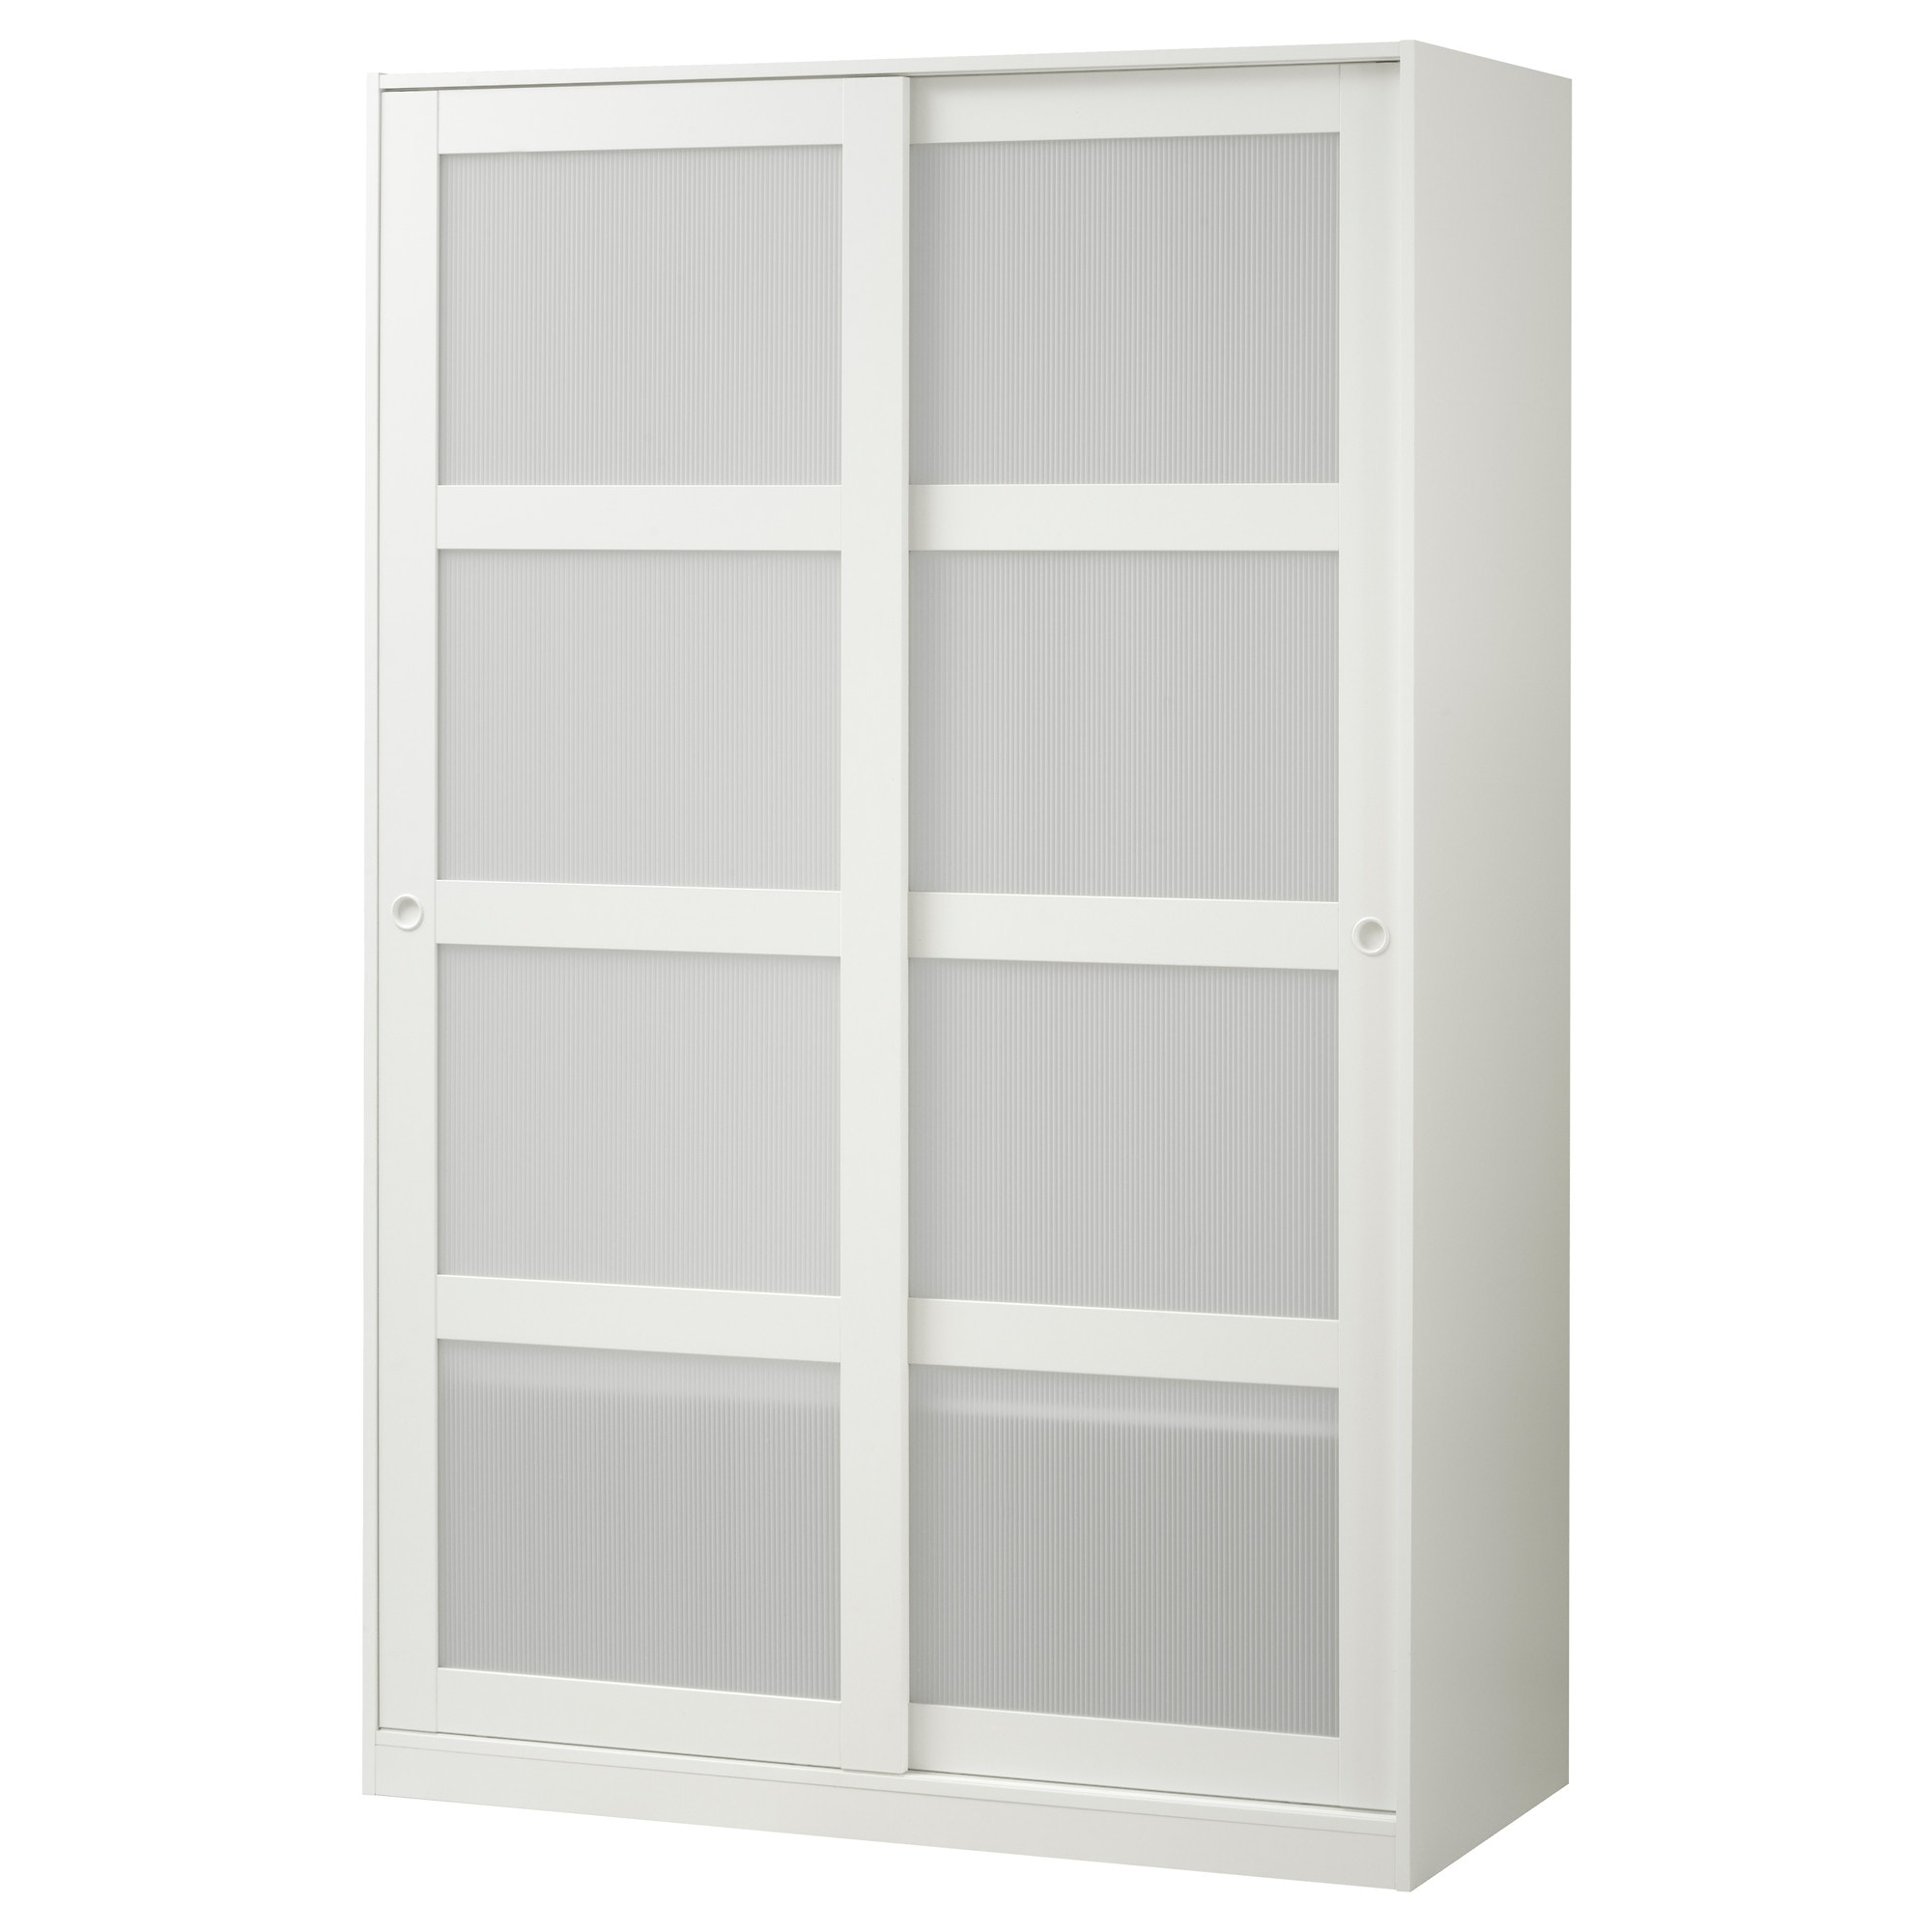 Storage Cabinet Sliding Doors Wardrobes Armoires Closets Ikea